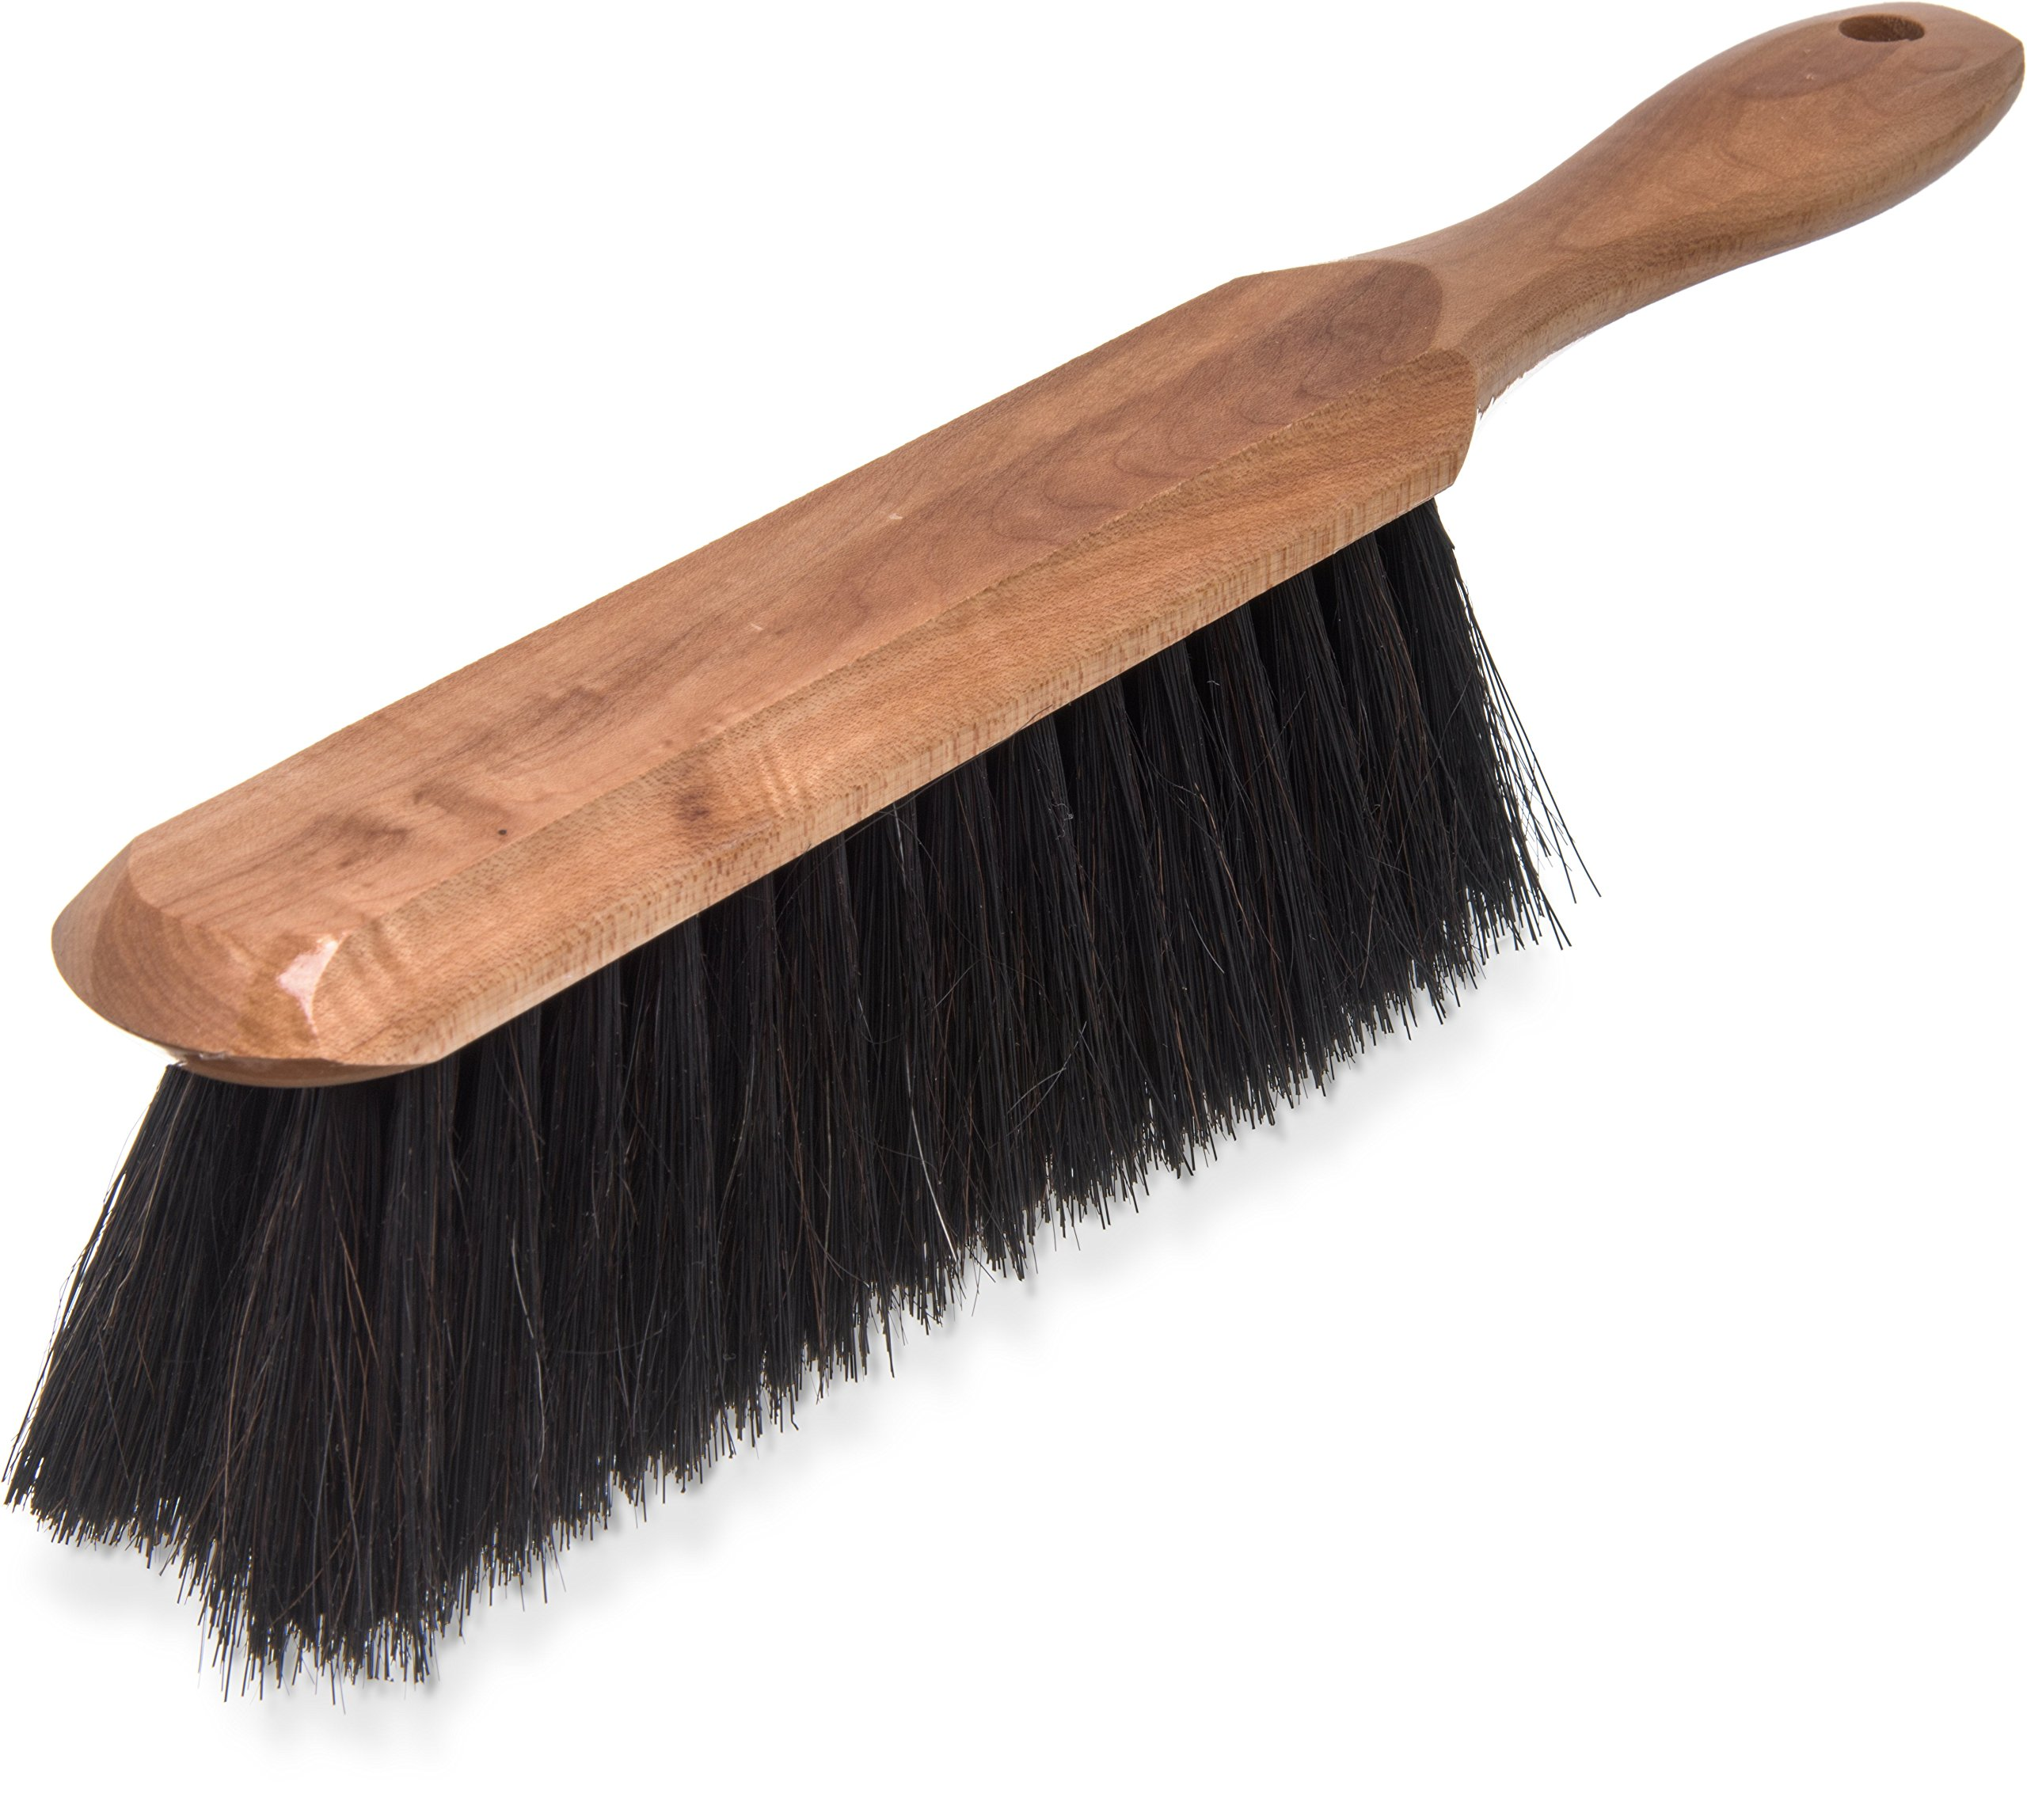 Carlisle 4048500 Wood Handle Counter Brush, Horsehair and Polypropylene Bristles, 8'' Brush Size, 13'' Overall Length (Pack of 12)